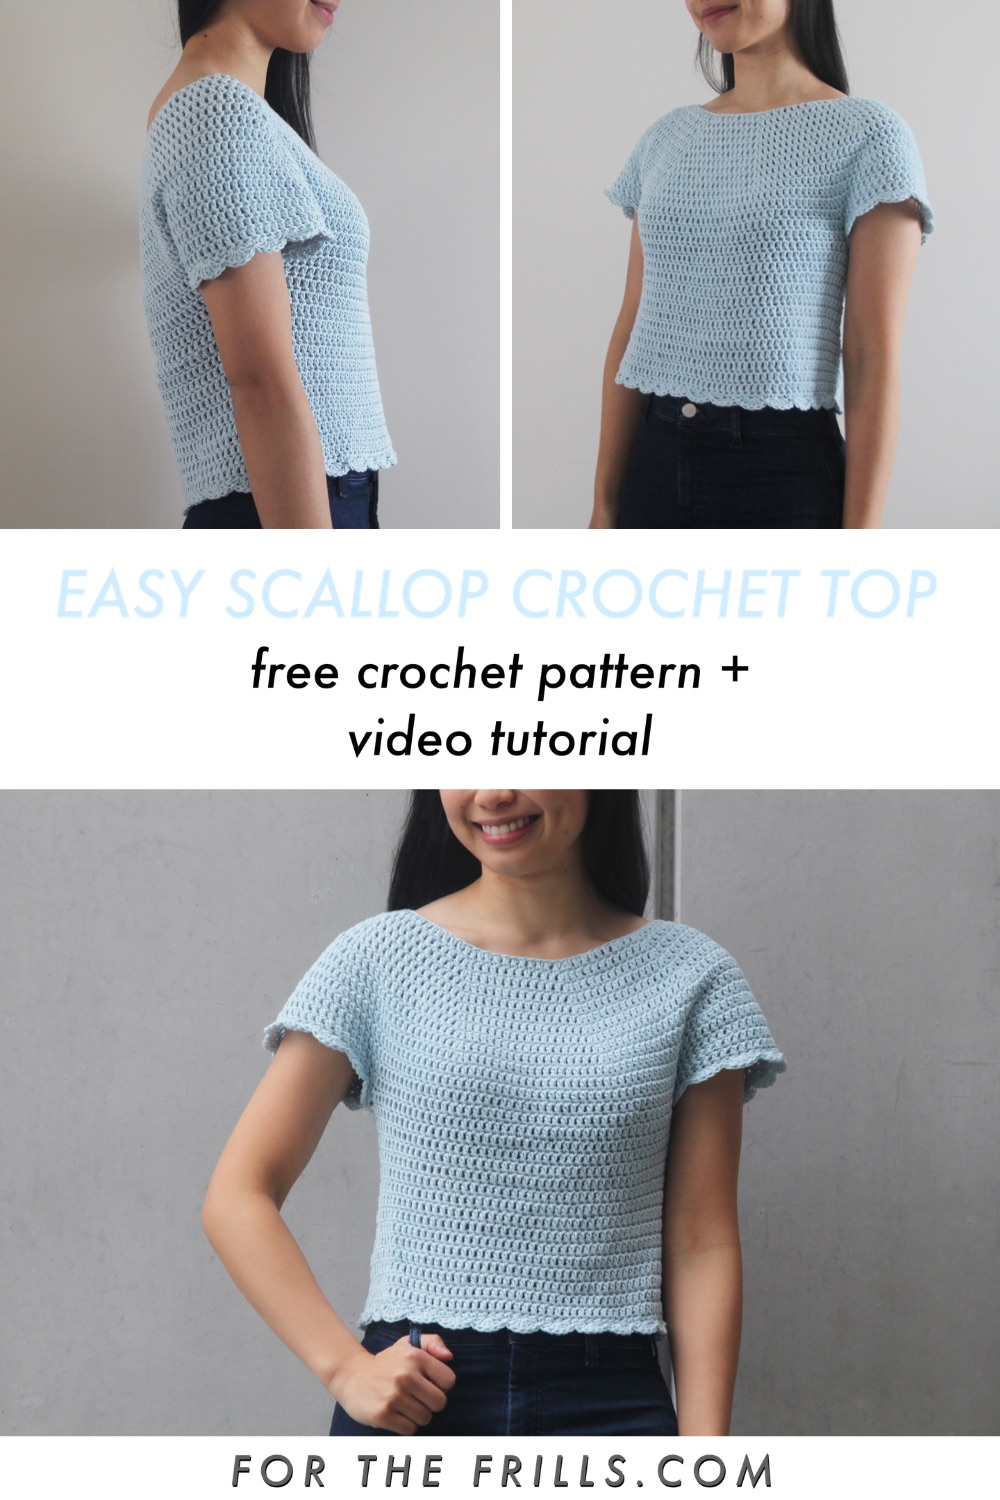 pin image of scallop crochet top pattern